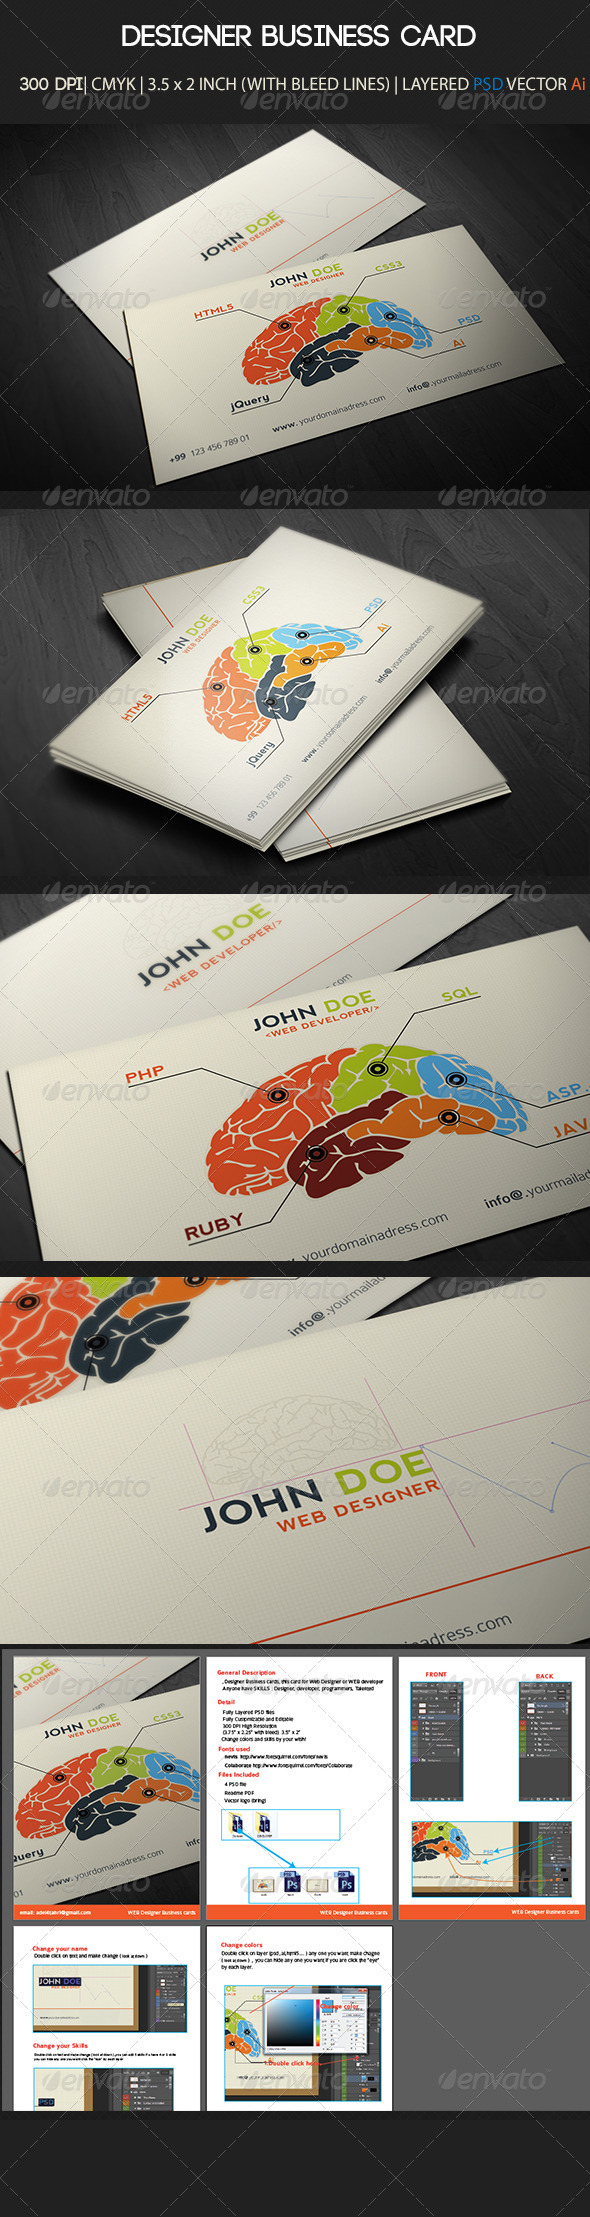 GraphicRiver Designer Business Card 3146456